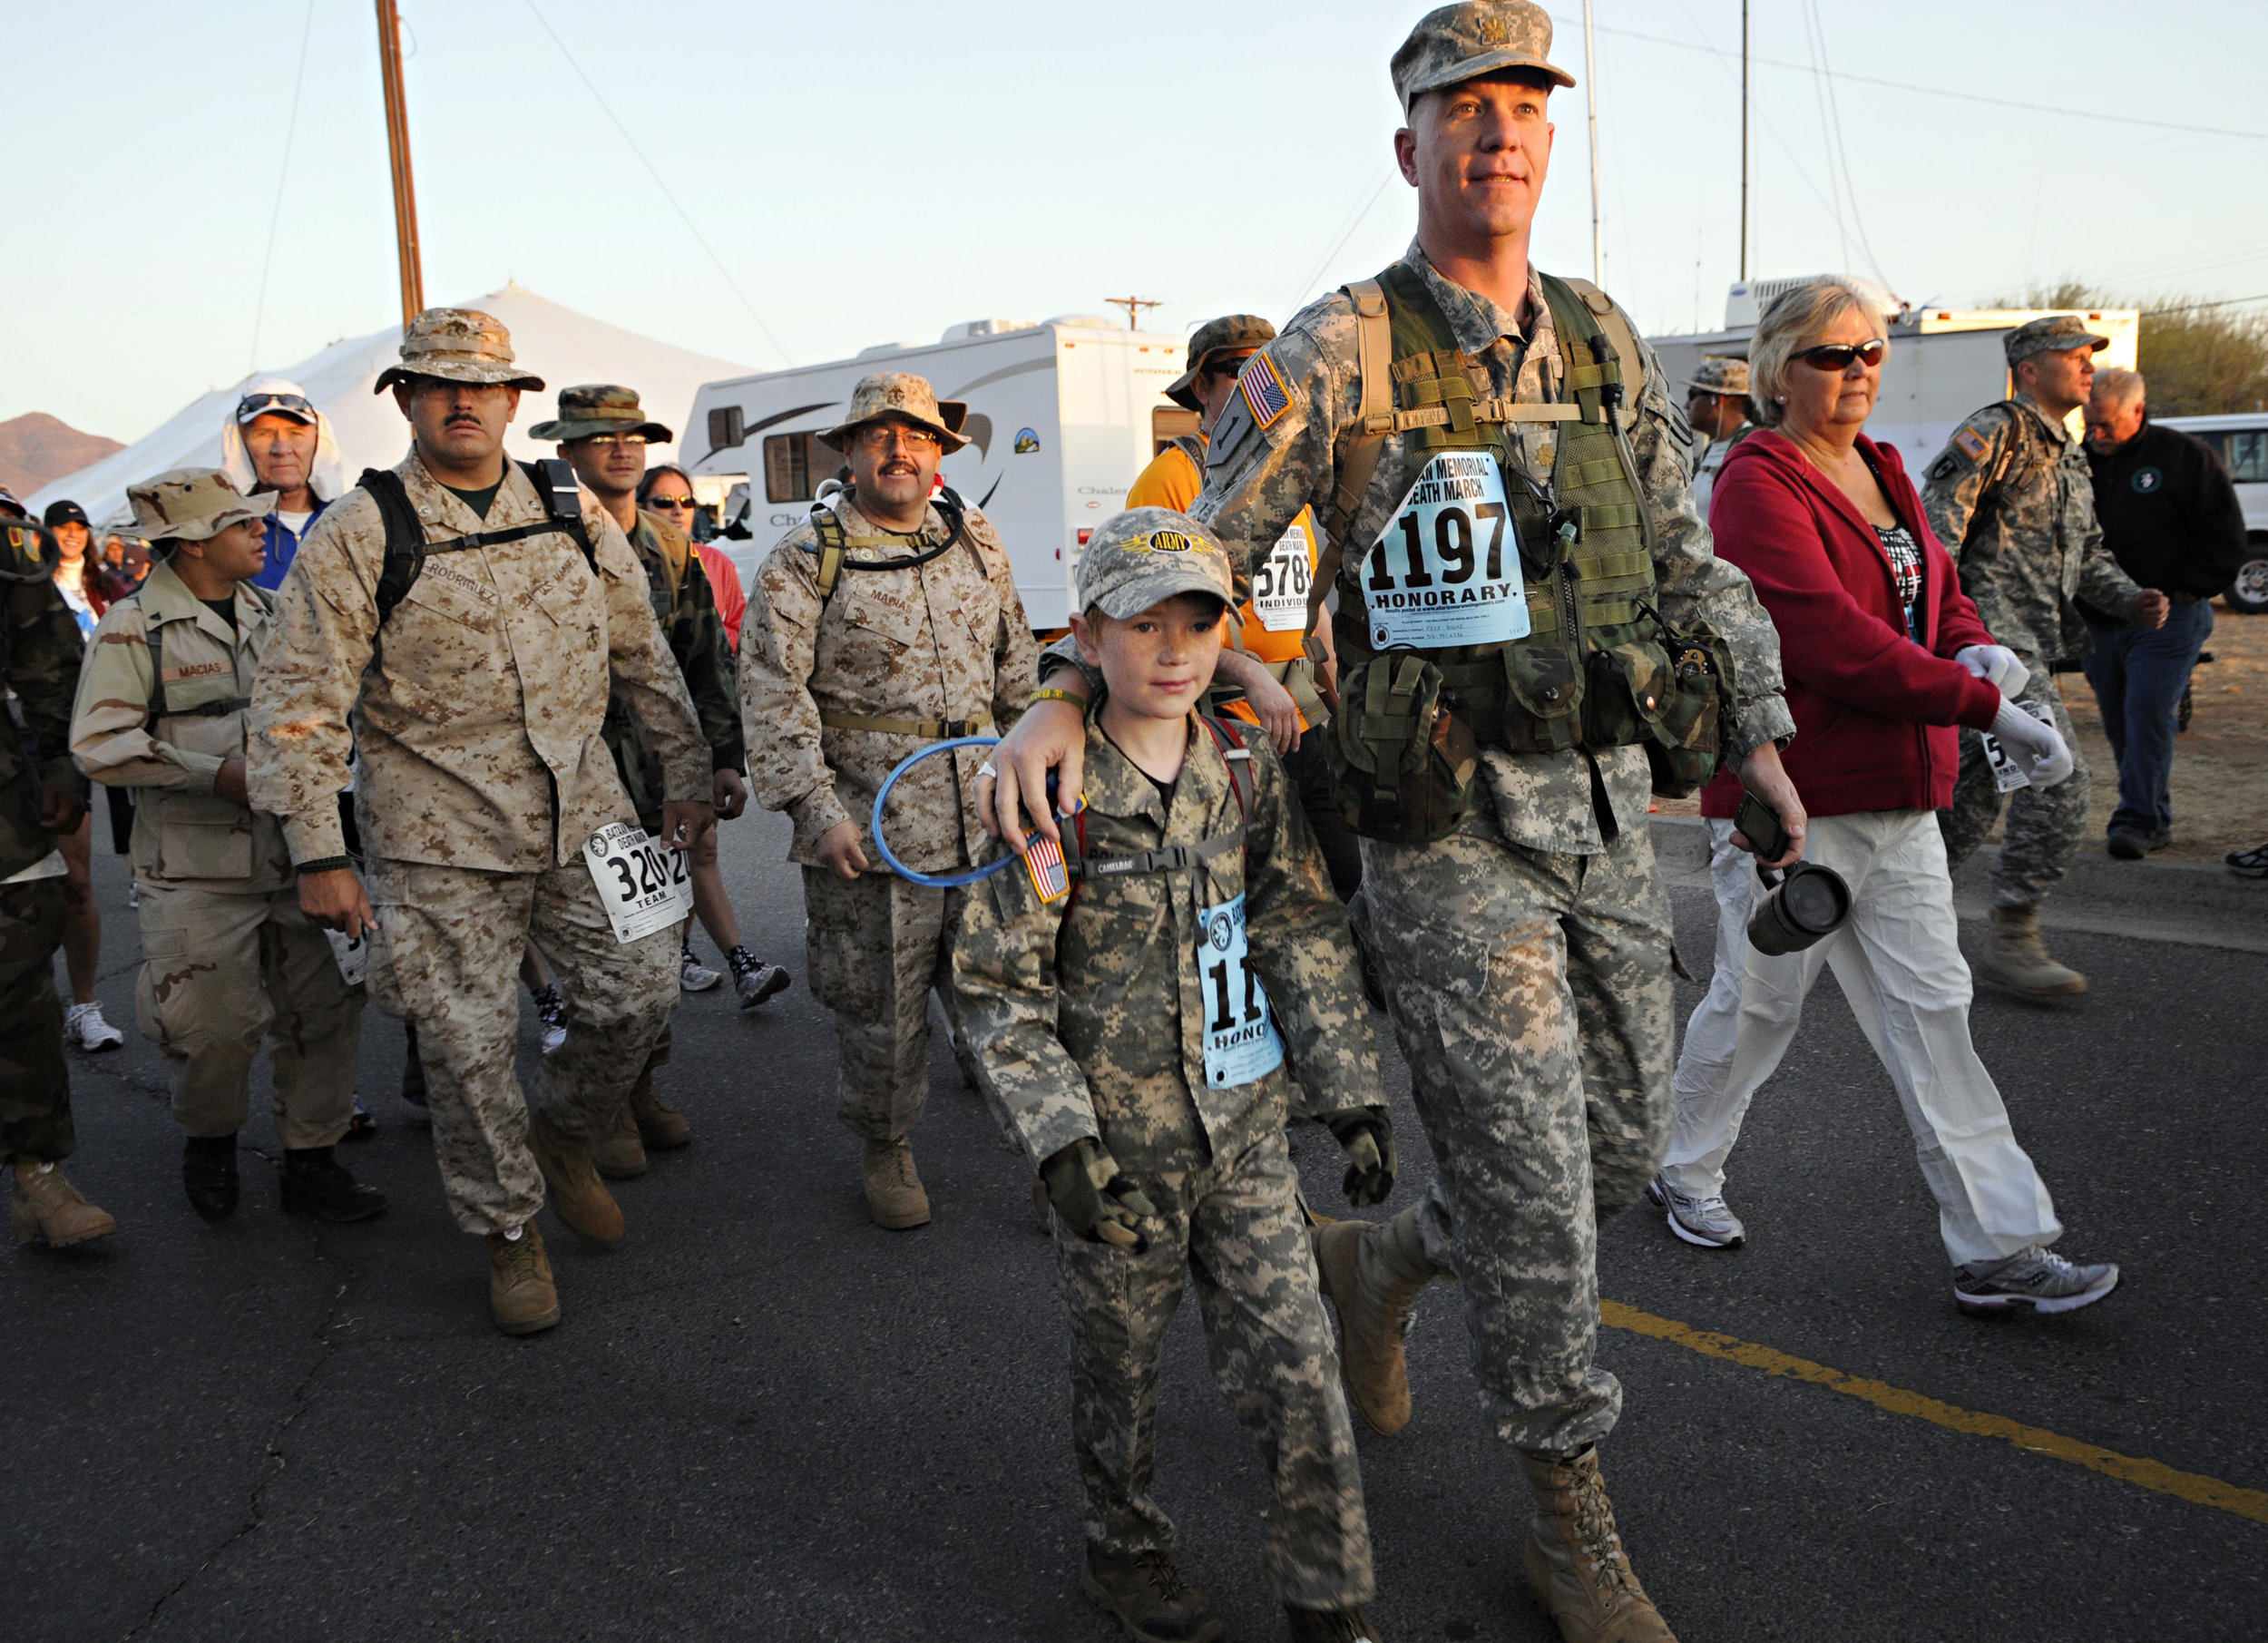 Kein Bolke and his son, Max Bolke, 9, of White Sands, begin their 15.2-mile walk during the 22nd Annual Bataan Memorial Death March at White Sands Missile Range, Sunday, March 27, 2011. This was Max's first Bataan walk and he later said it was good and that he would do it again next year. (Morgan Petroski/Albuquerque Journal)